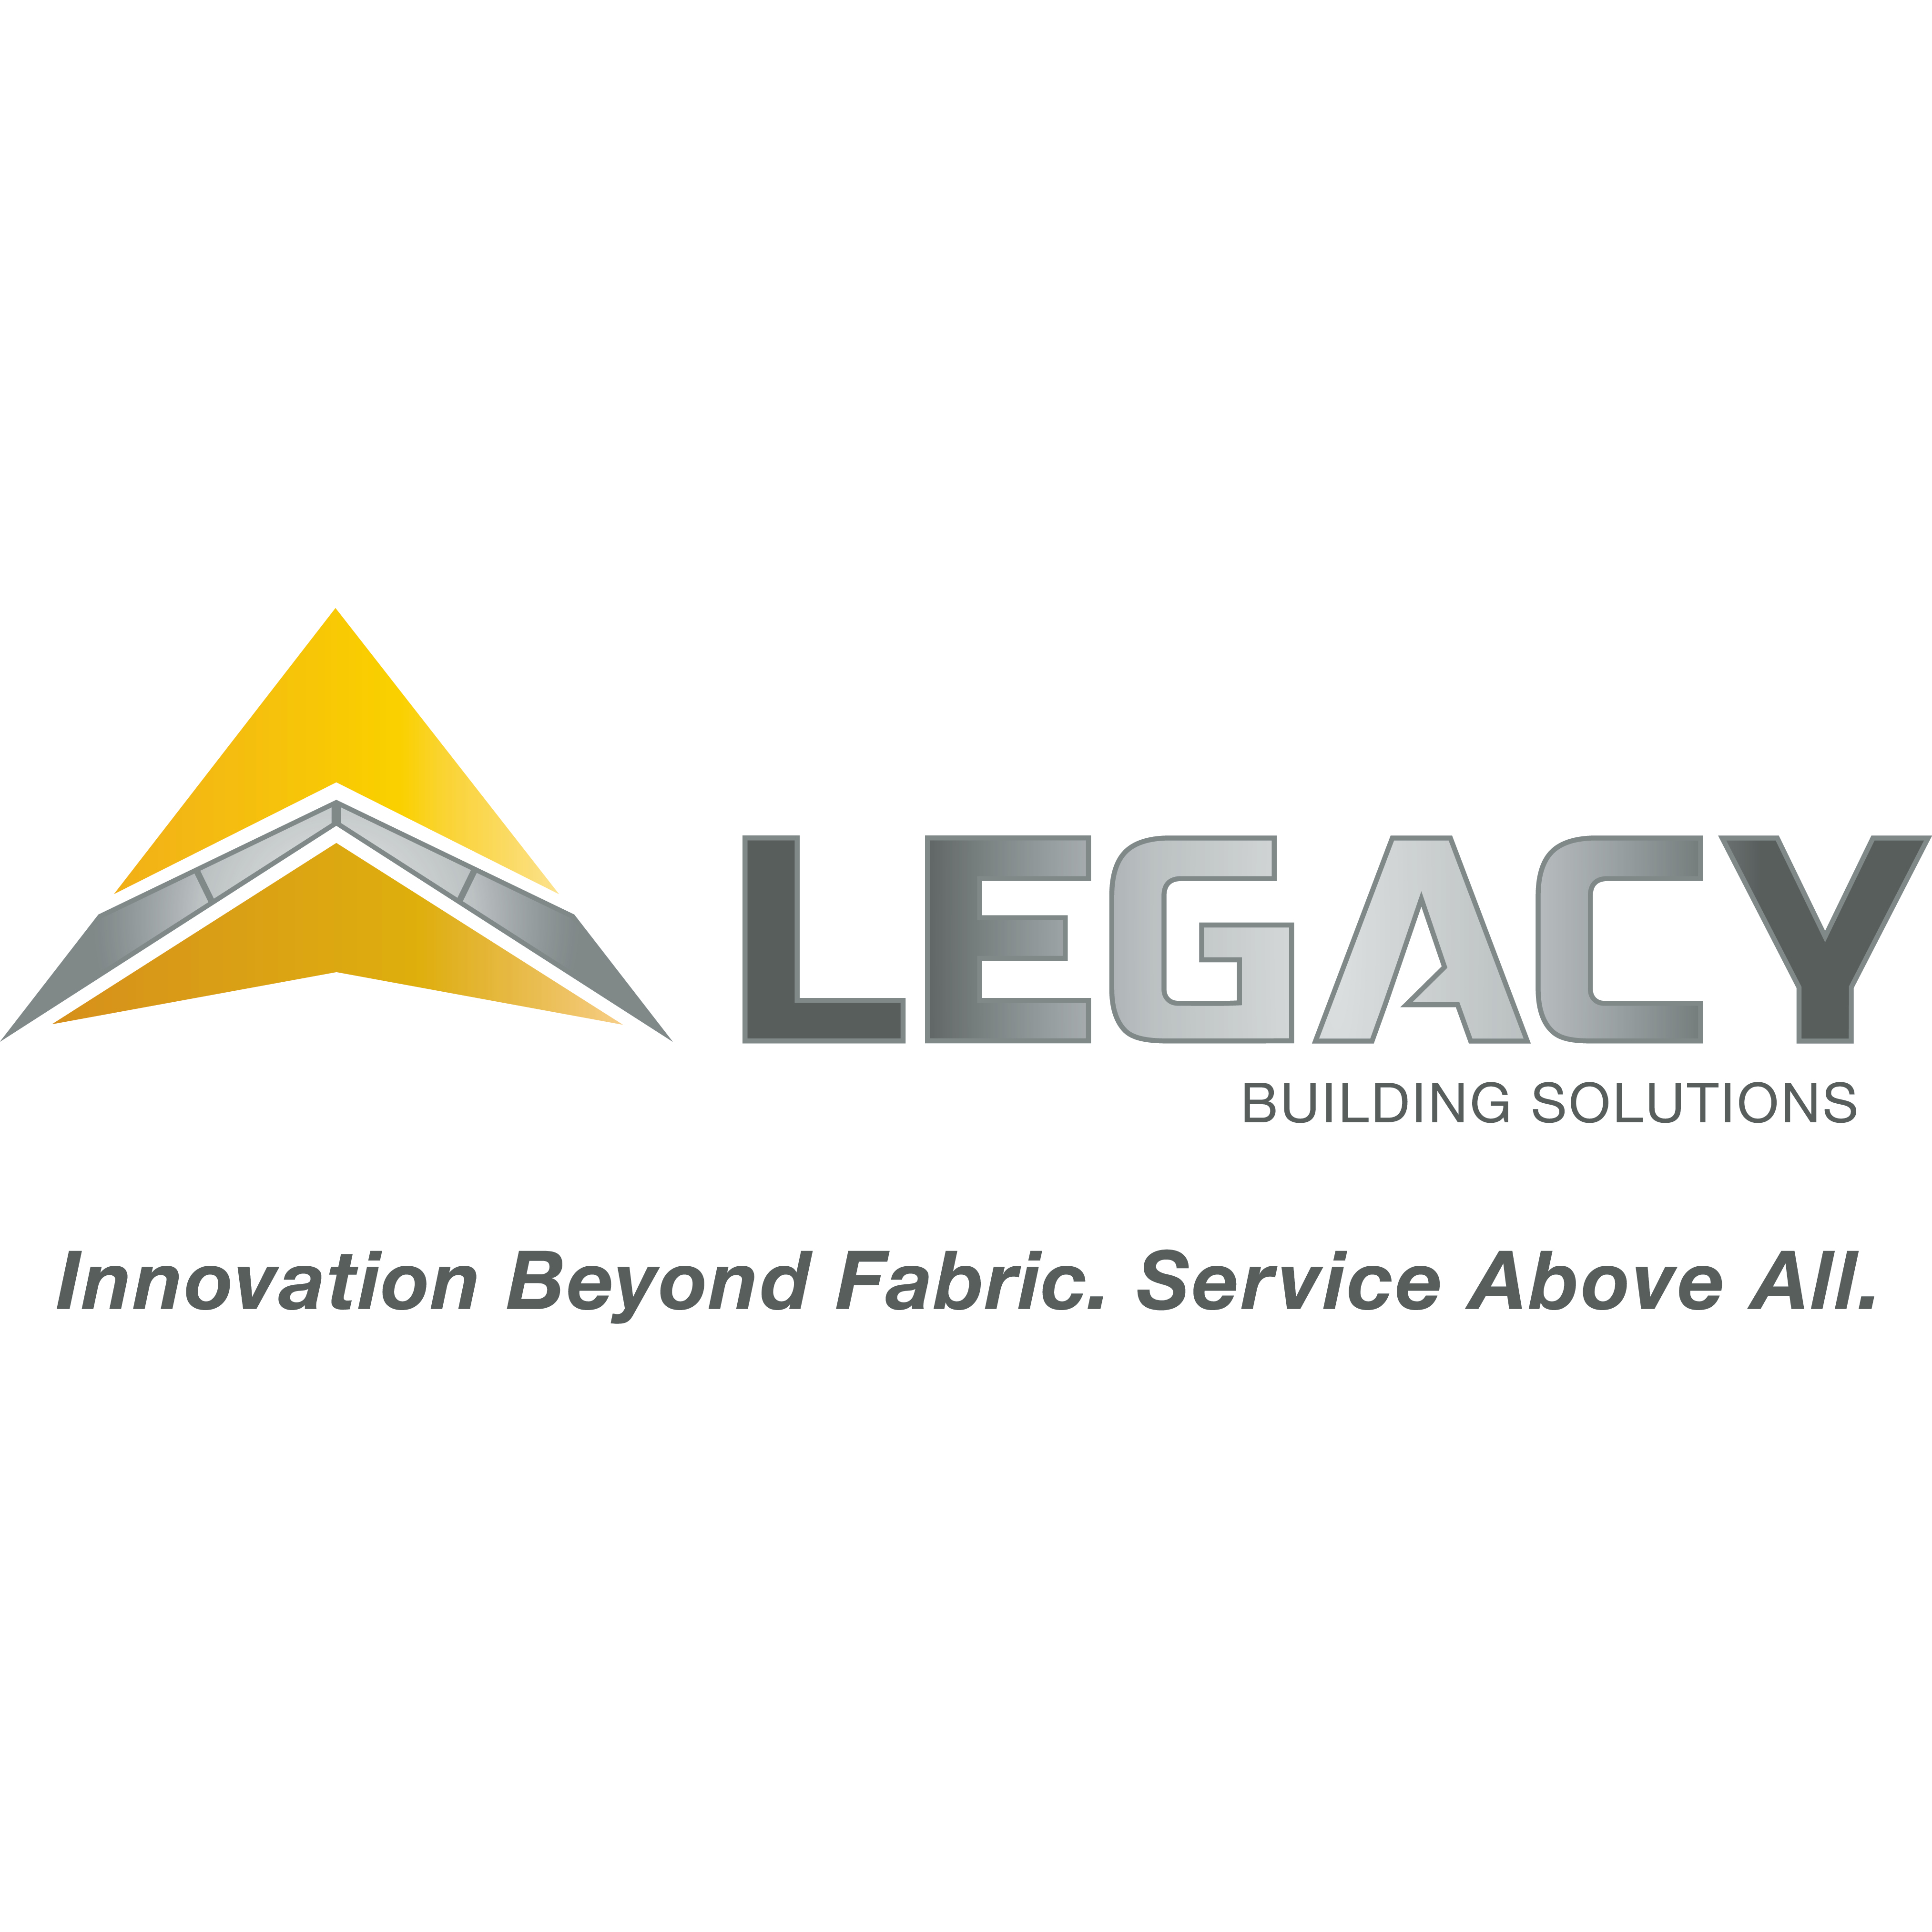 Legacy Building Solutions image 15